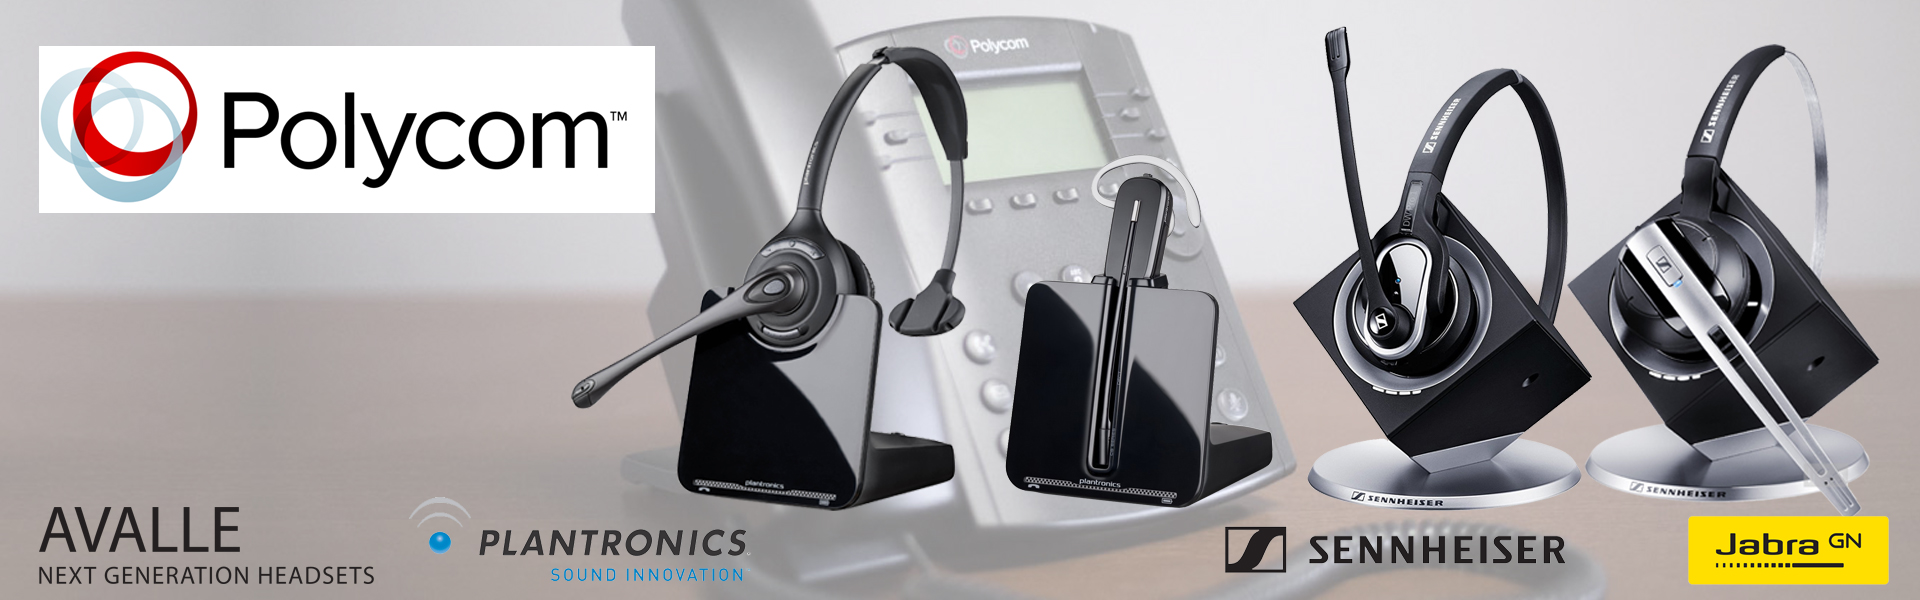 Headsets for Polycom